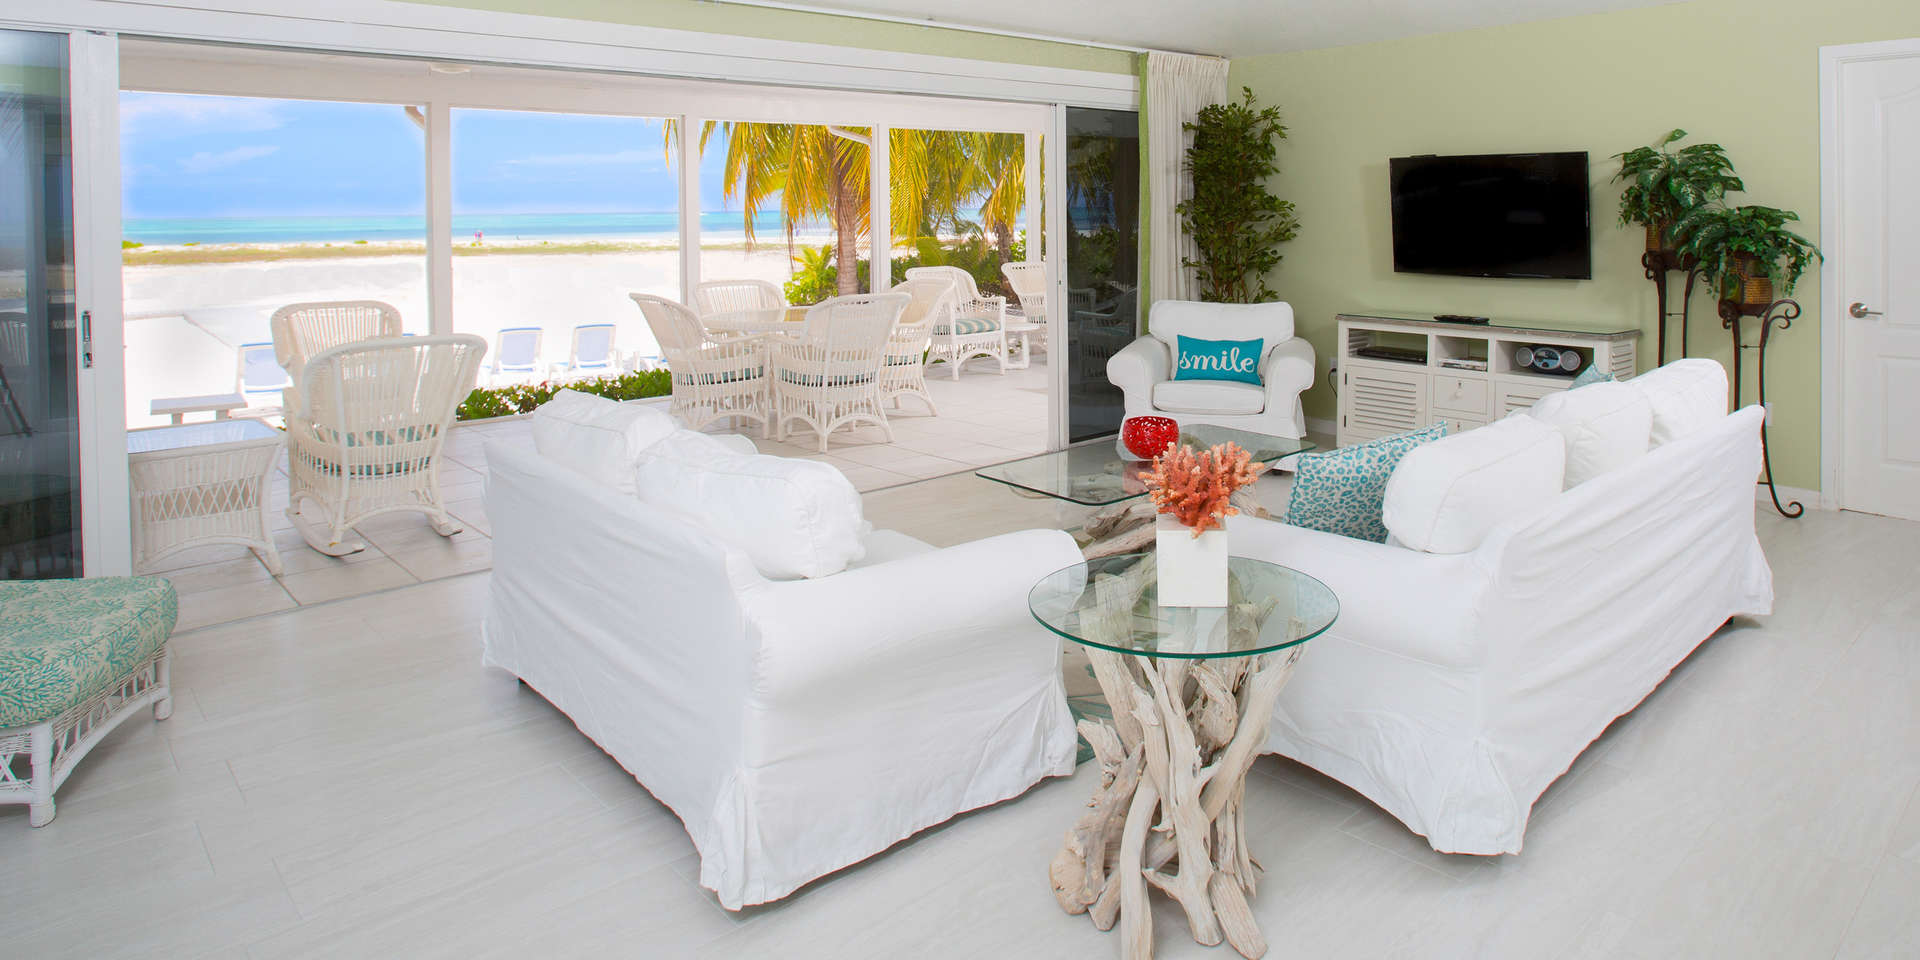 Luxury villa rentals caribbean - Cayman islands - Grand cayman - Cayman kai - Villa Two Rainbows - Image 1/14